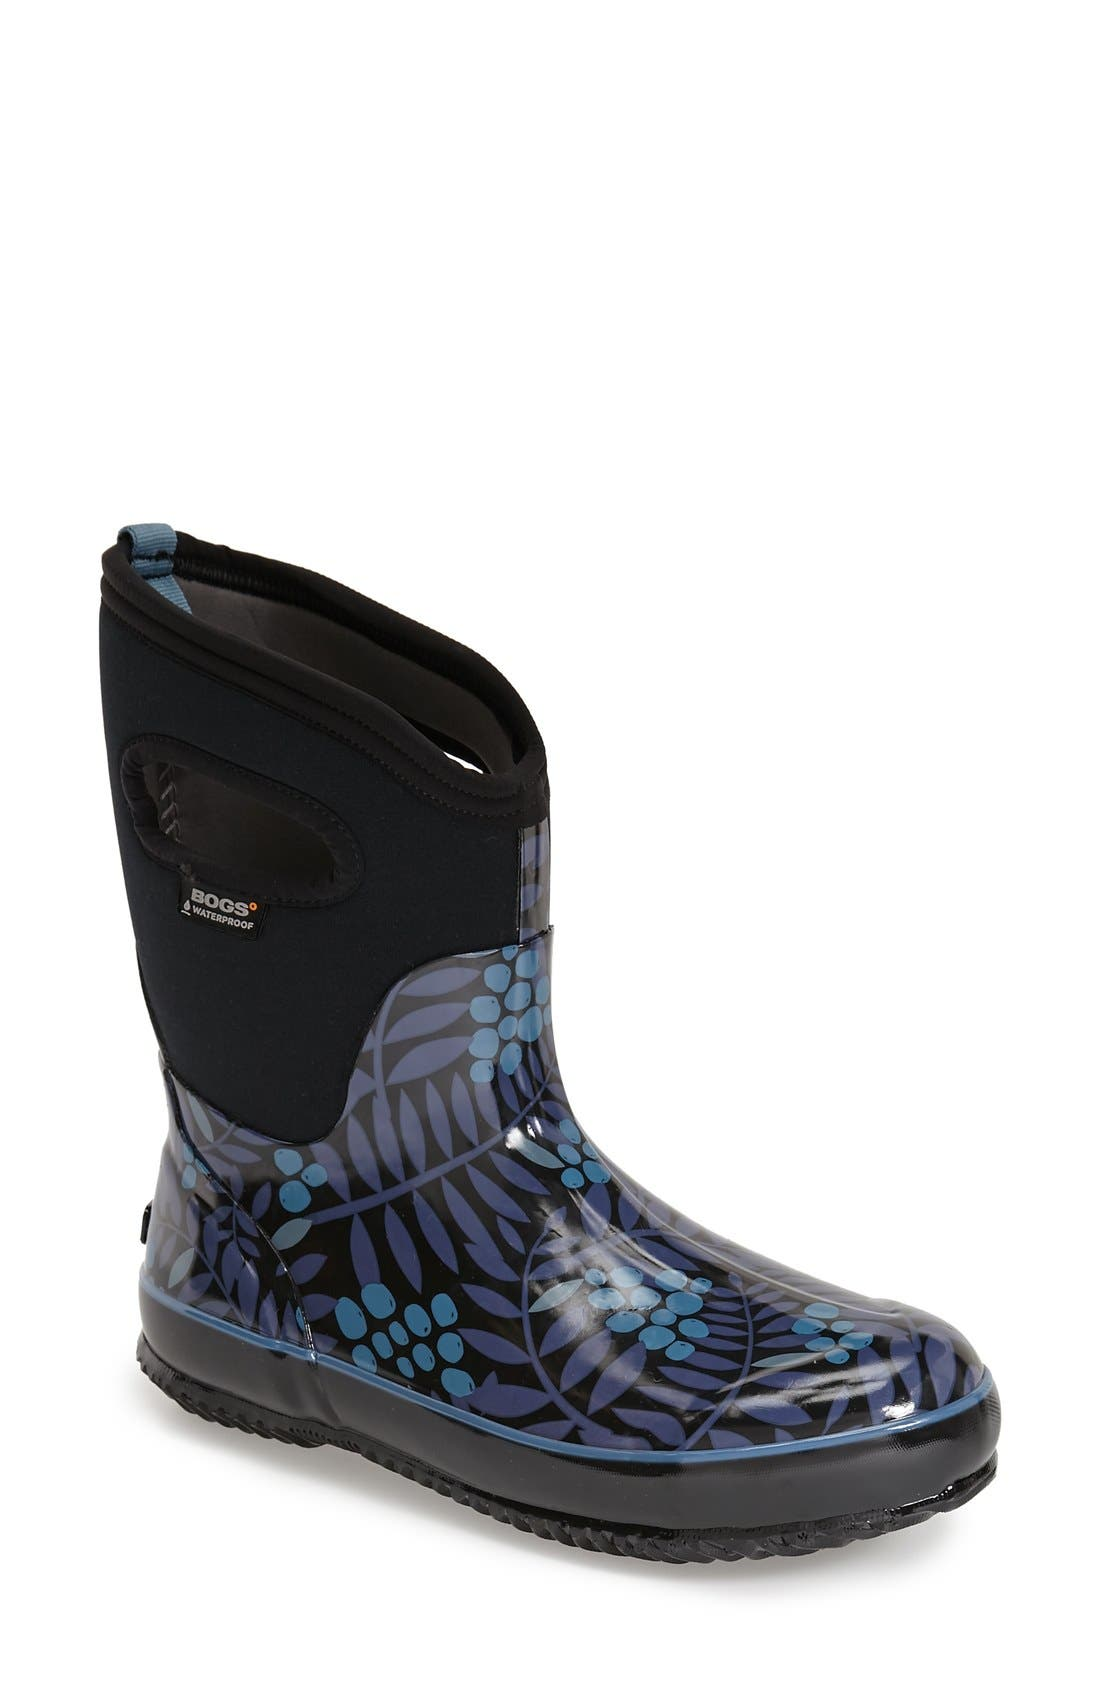 Bogs 'Winterberry' Mid High Waterproof Snow Boot with Cutout Handles Women